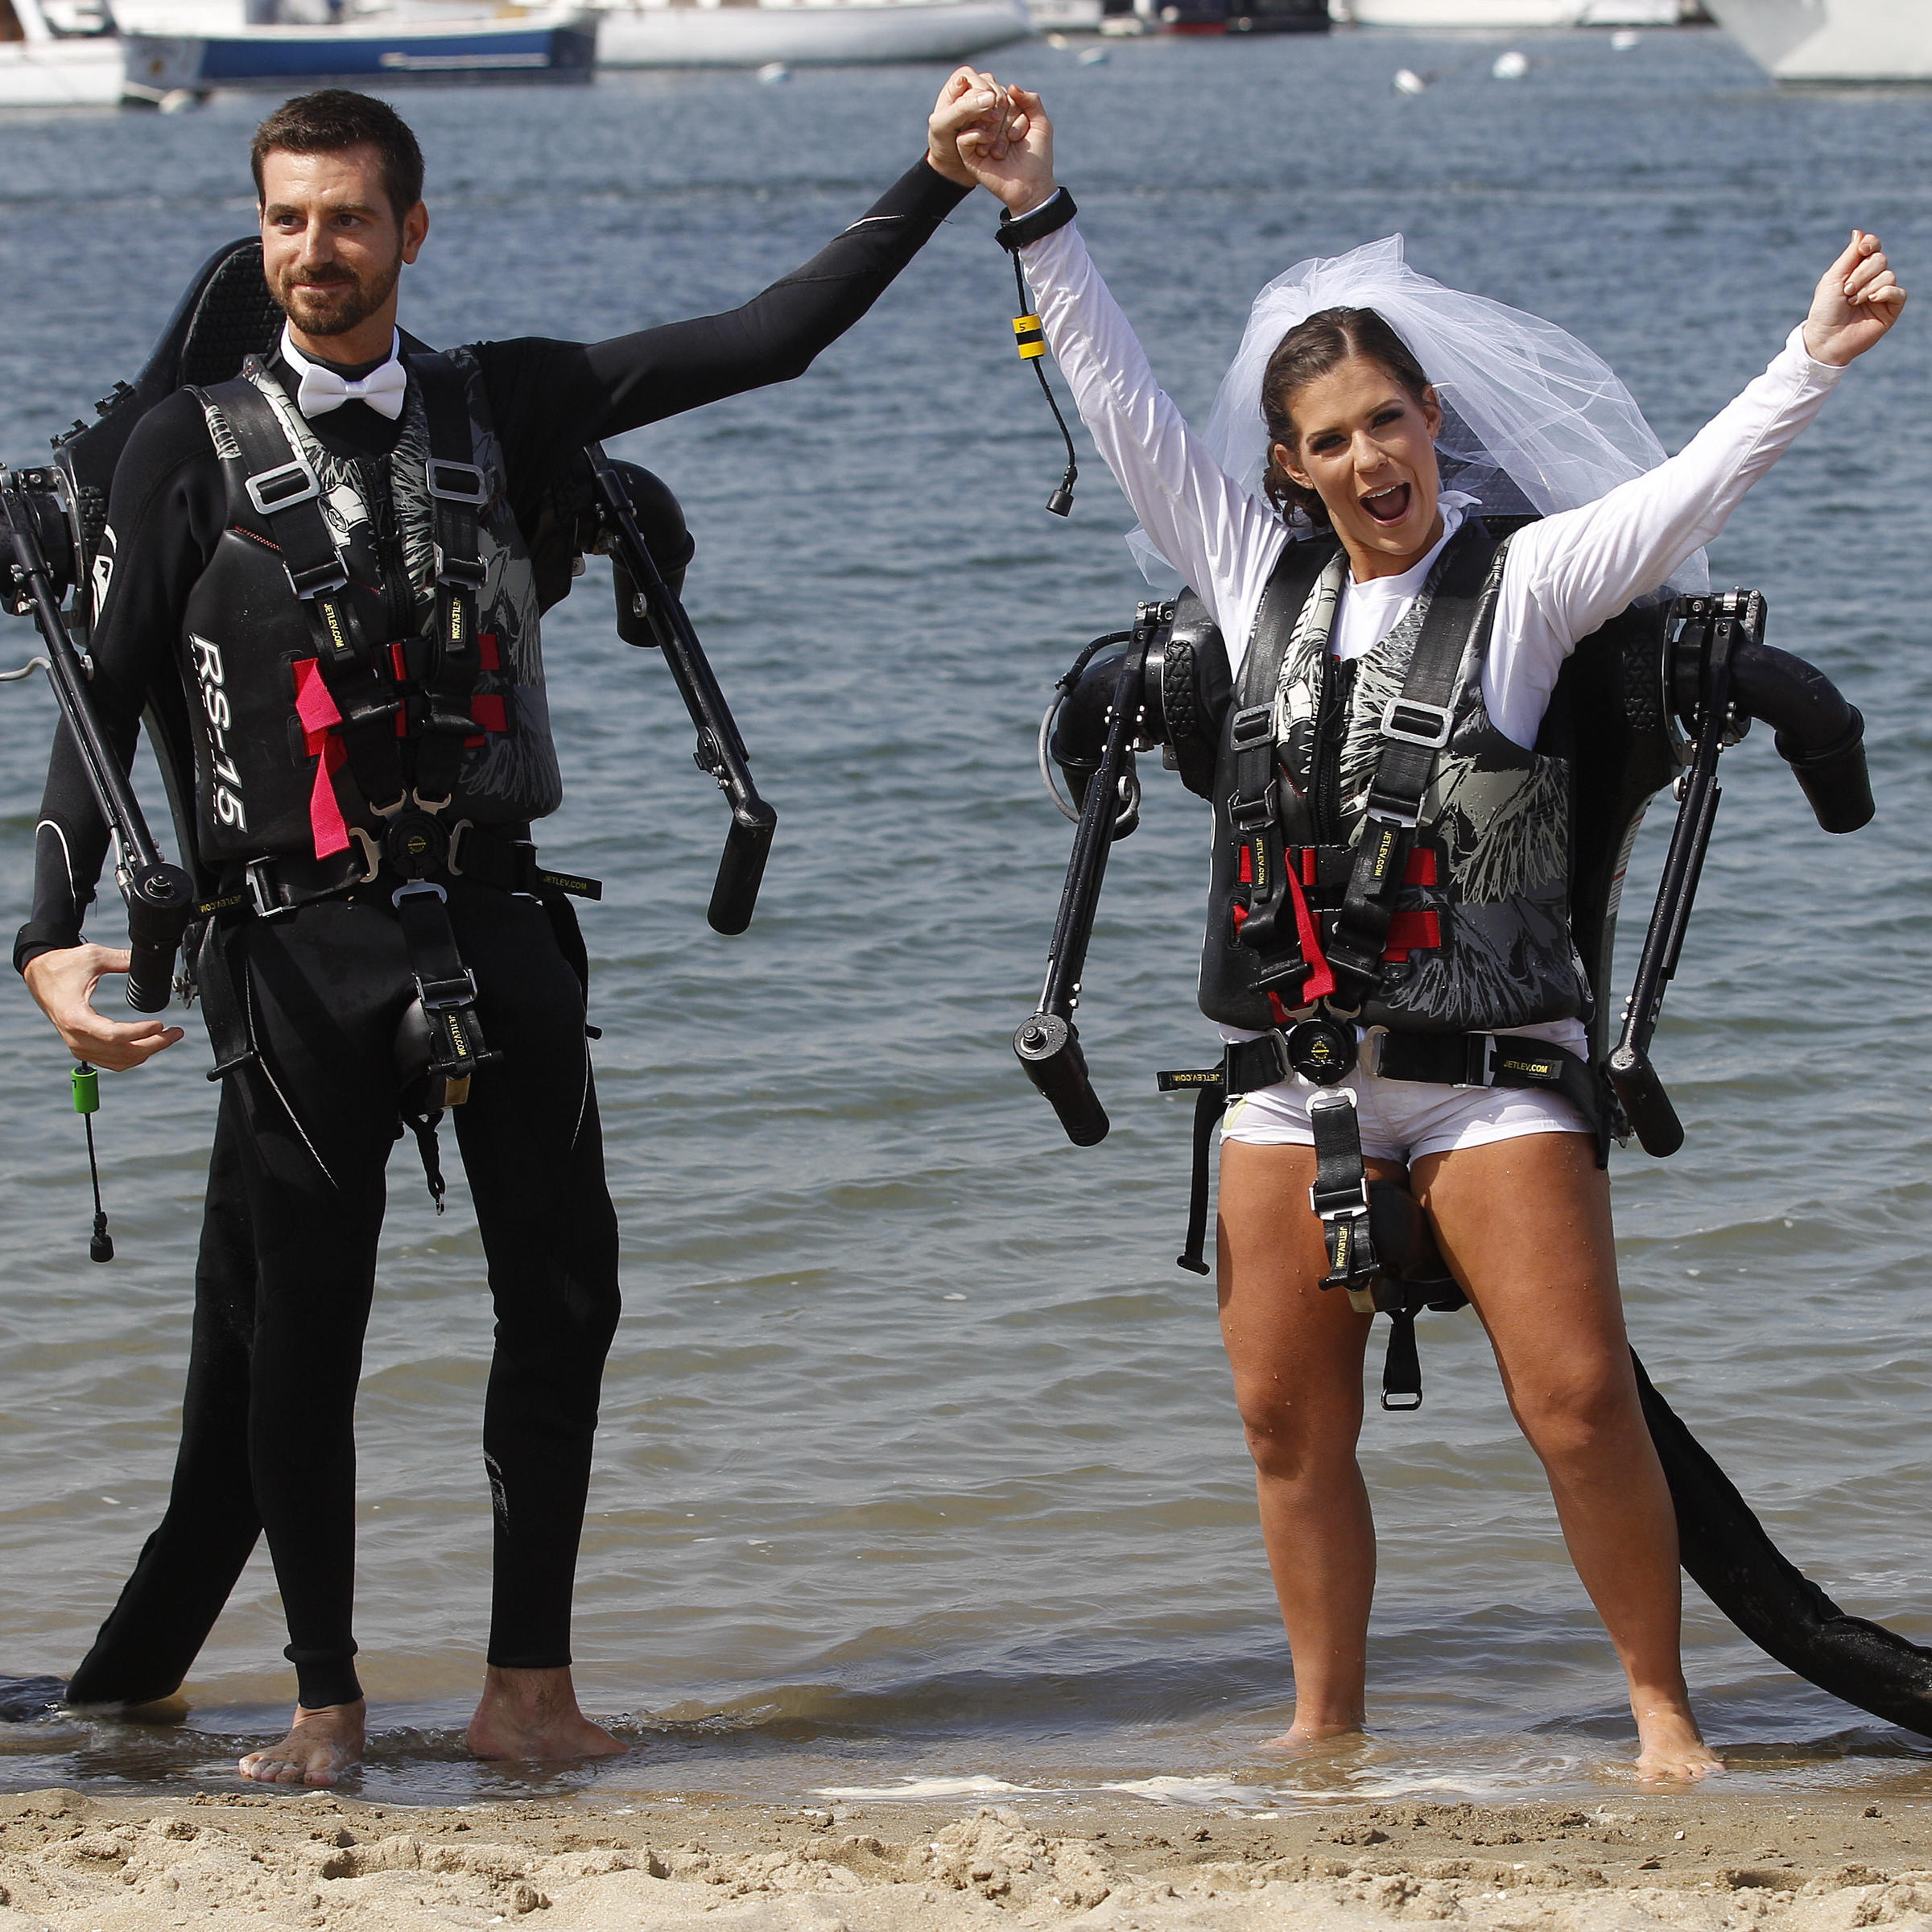 7 creative wedding ideas from history kuvokvjz grant and amanda engler celebrate in jet packs at their wedding ceremony in 2012 in newport beach calif junglespirit Image collections